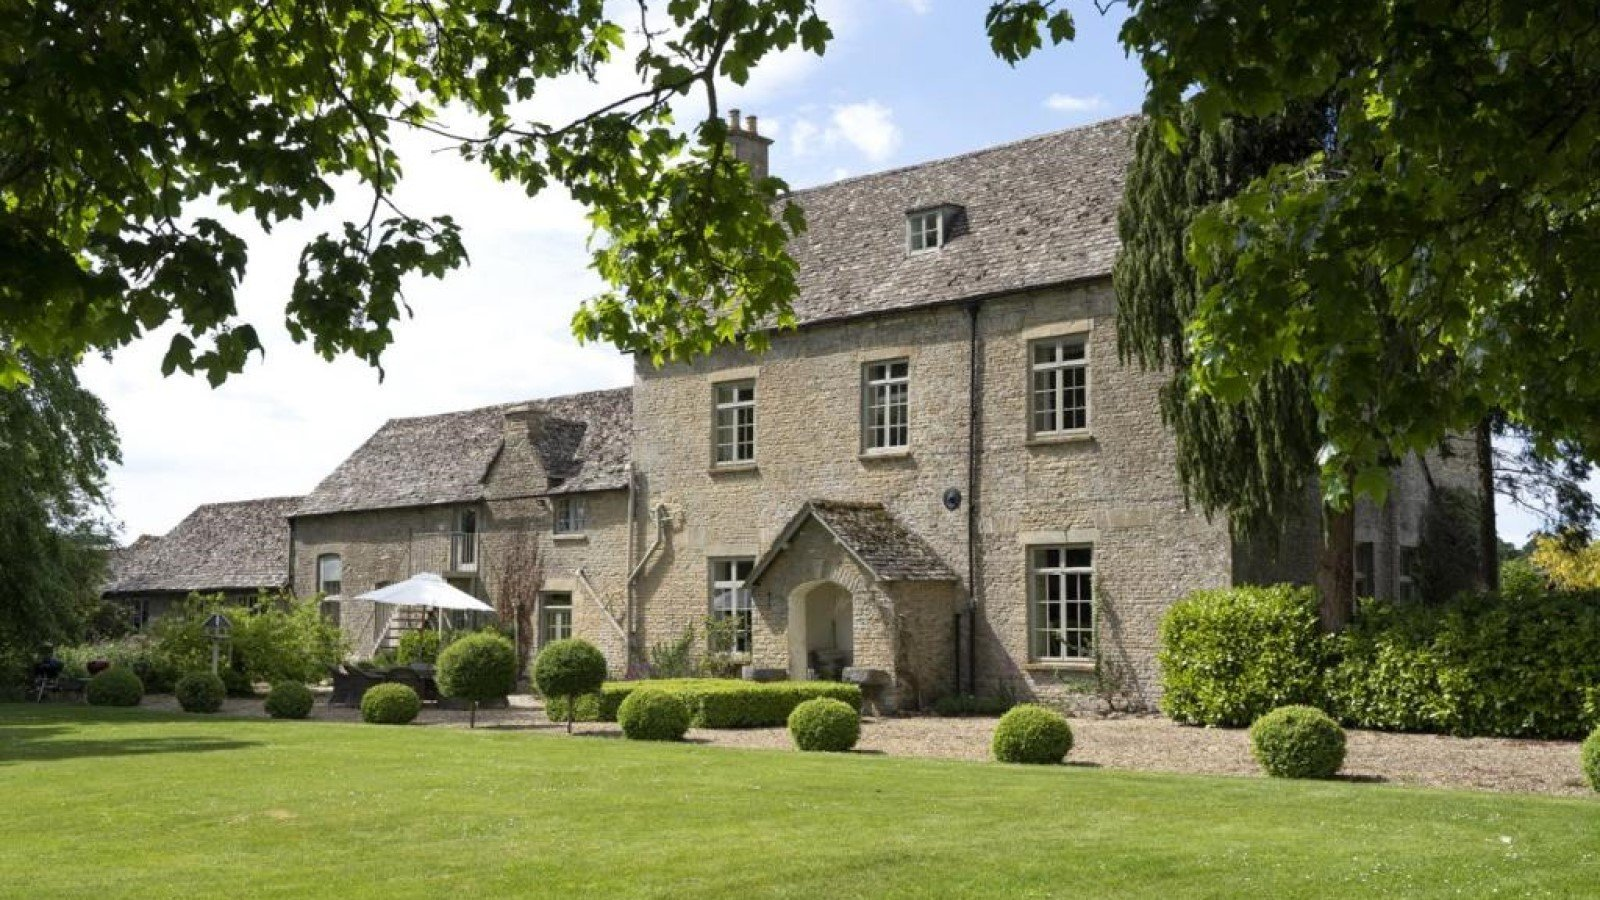 Lower Court Estate - Lower Court Manor House Facade